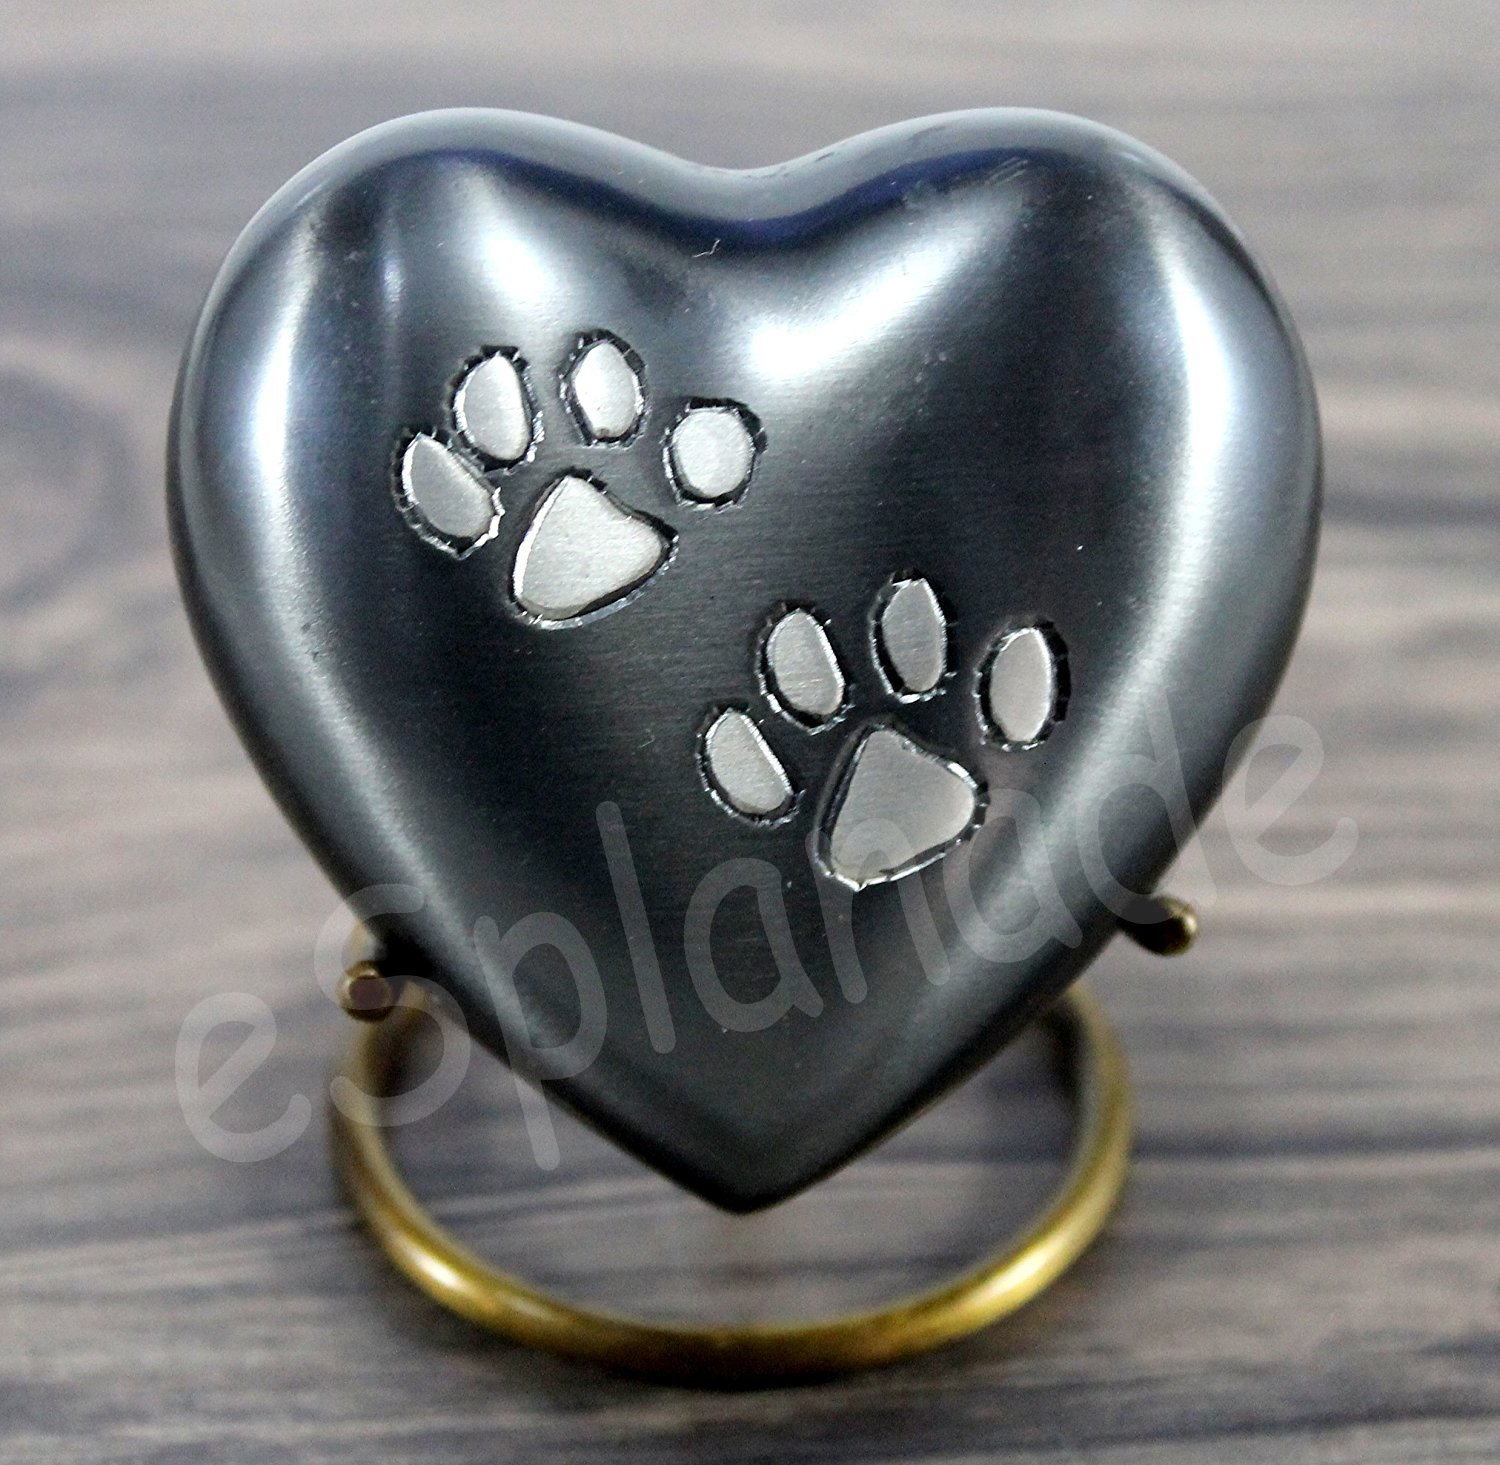 eSplanade Pet Cremation Urn Memorials urn Container Jar Pot | Brass Urn | Metal Urn | Burial Urn | Memorials Keepsake | Pet Dog Cat urn Dogs Cats StonKraft HeartShape_Grey